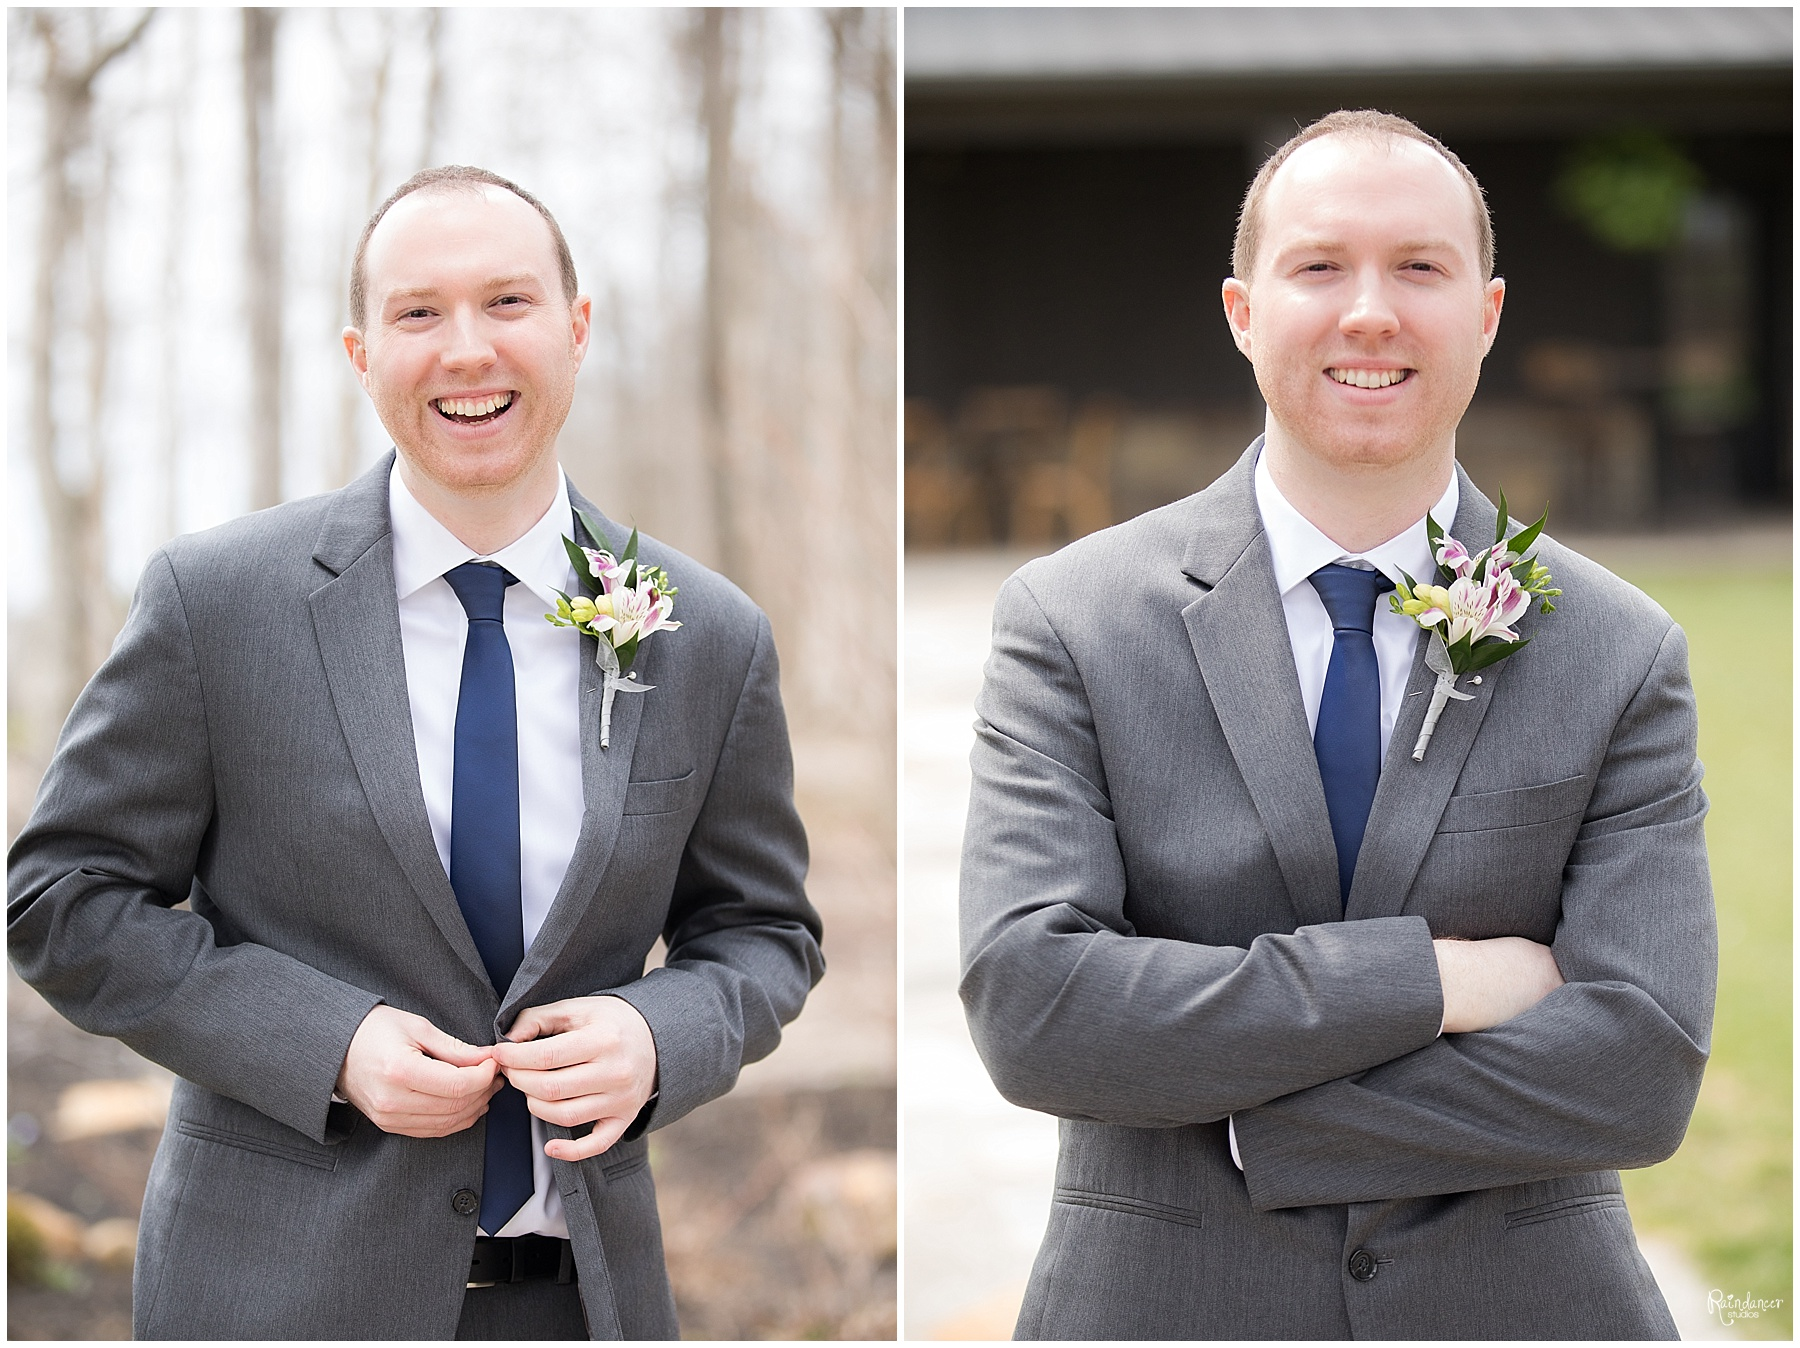 Smiling groom by Raindancer Studios Indianapolis Wedding Photographer Jill Howell